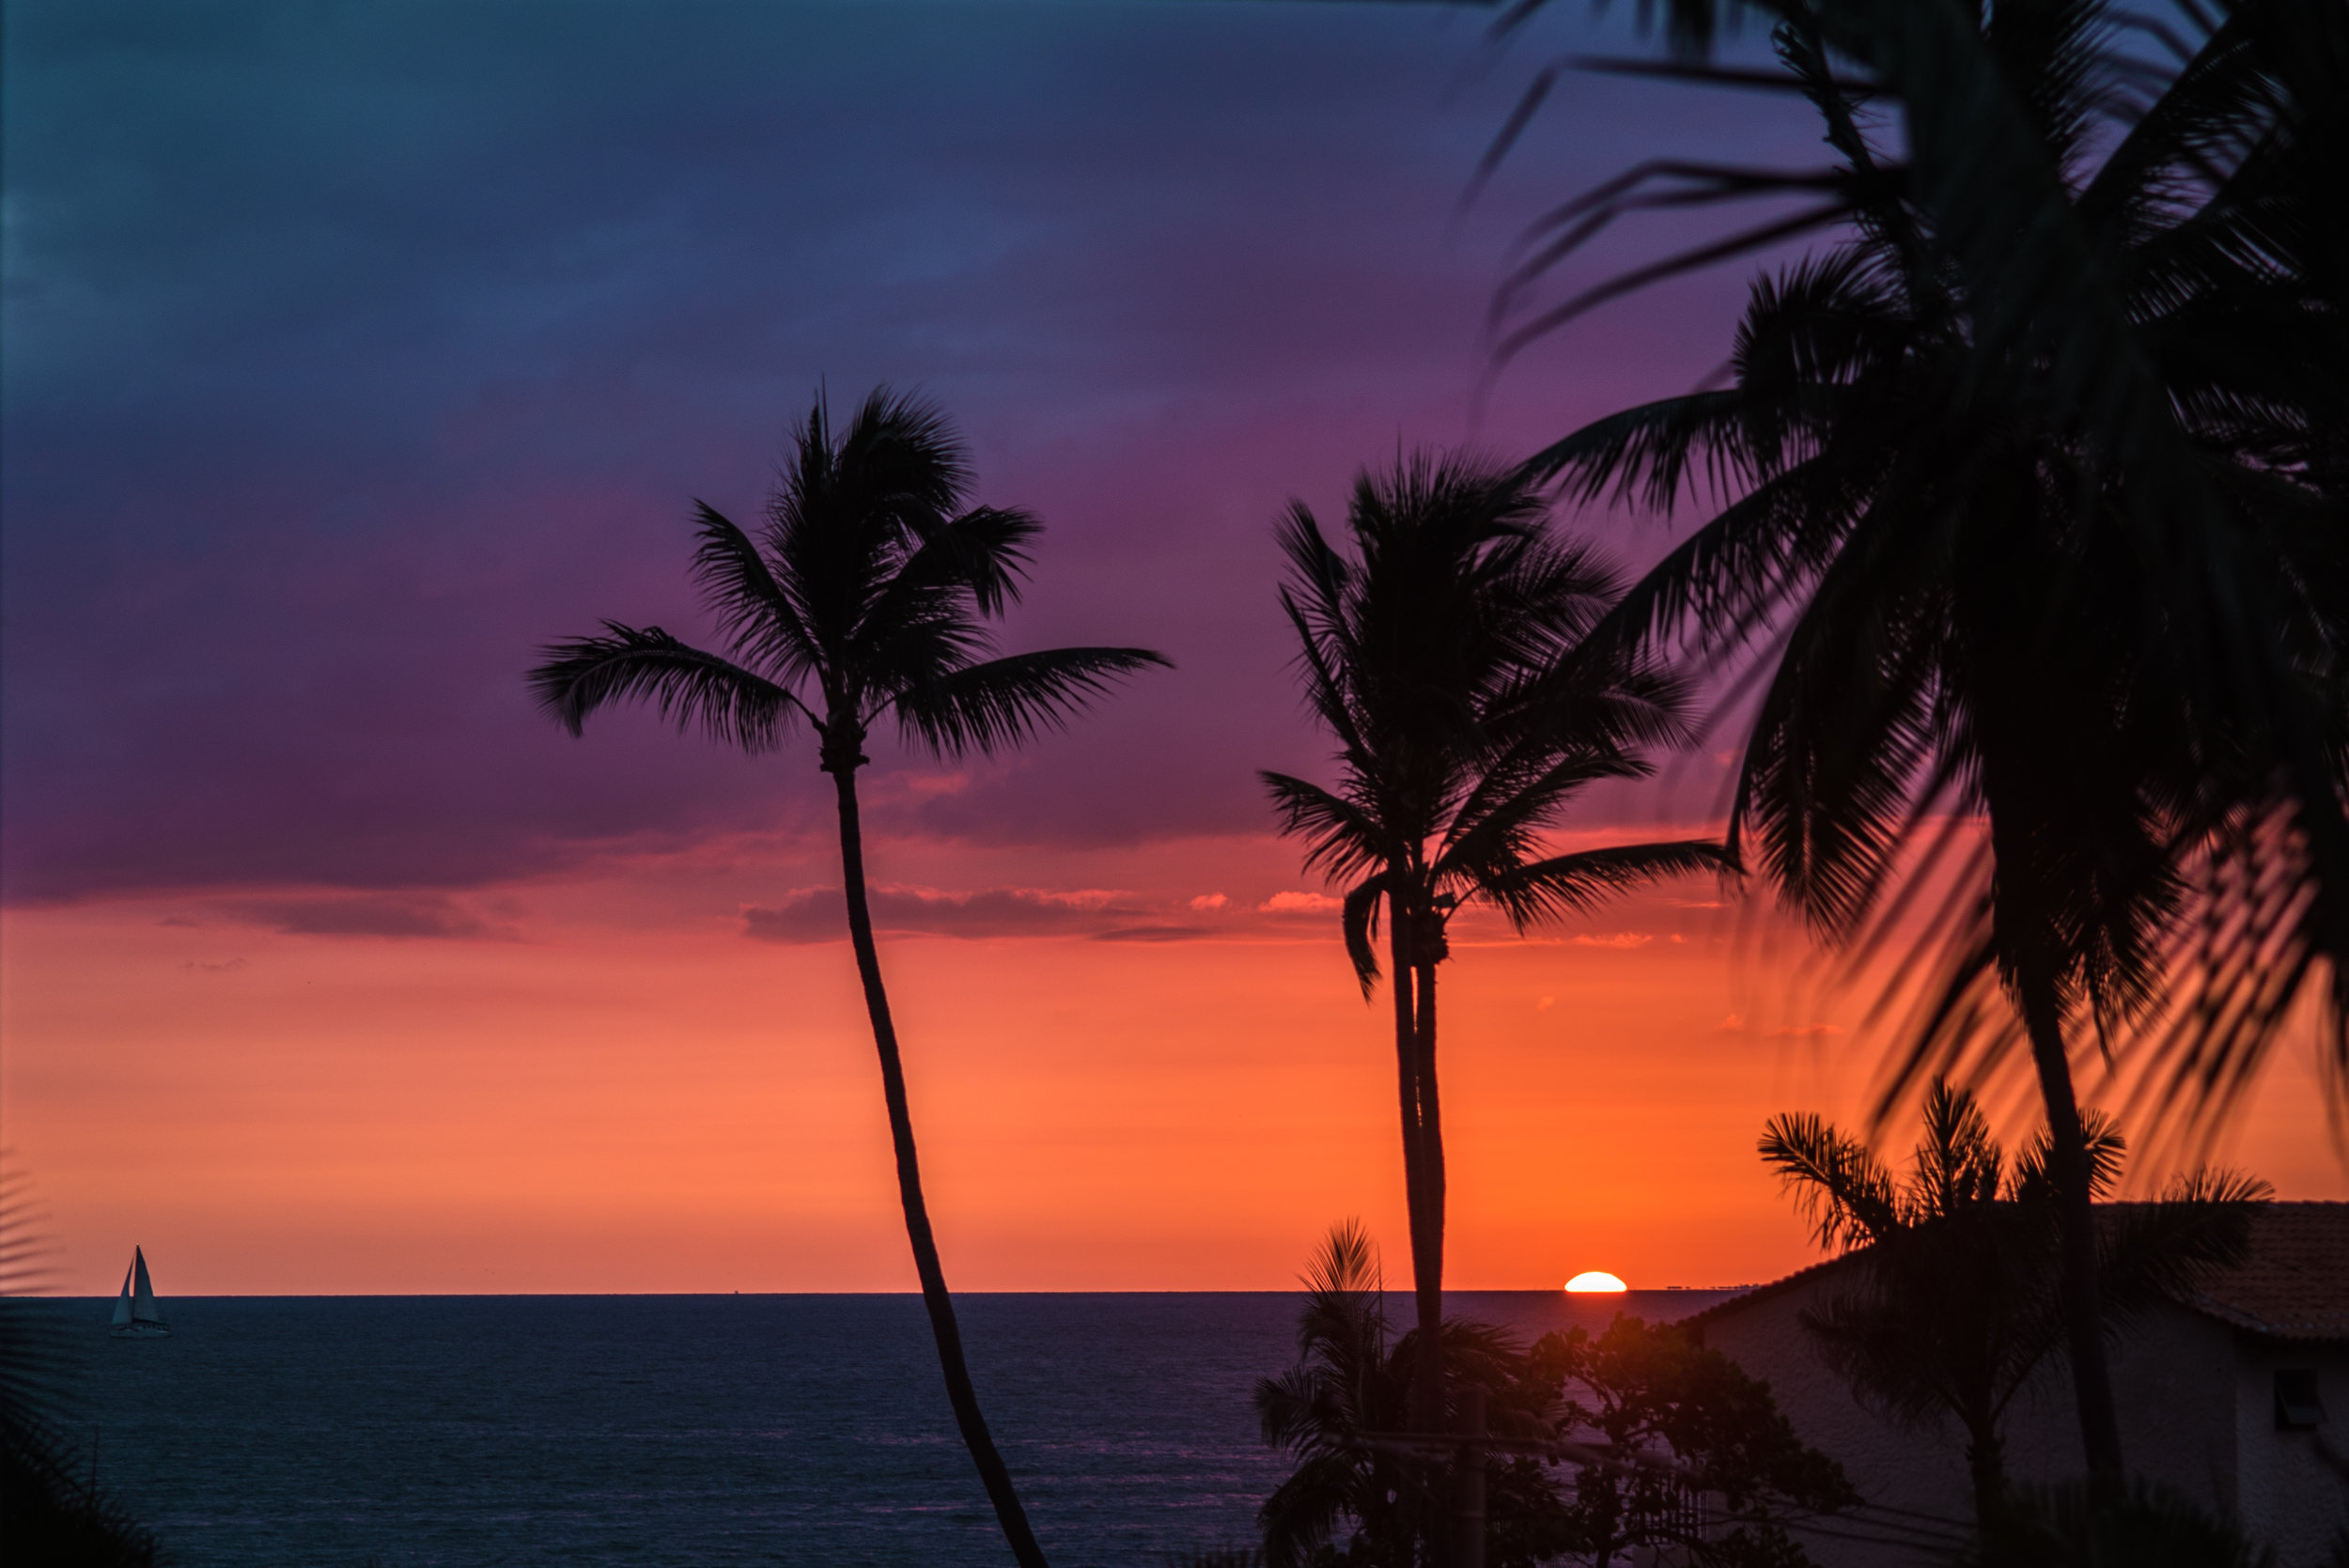 visual vacations, sun setting in the ocean